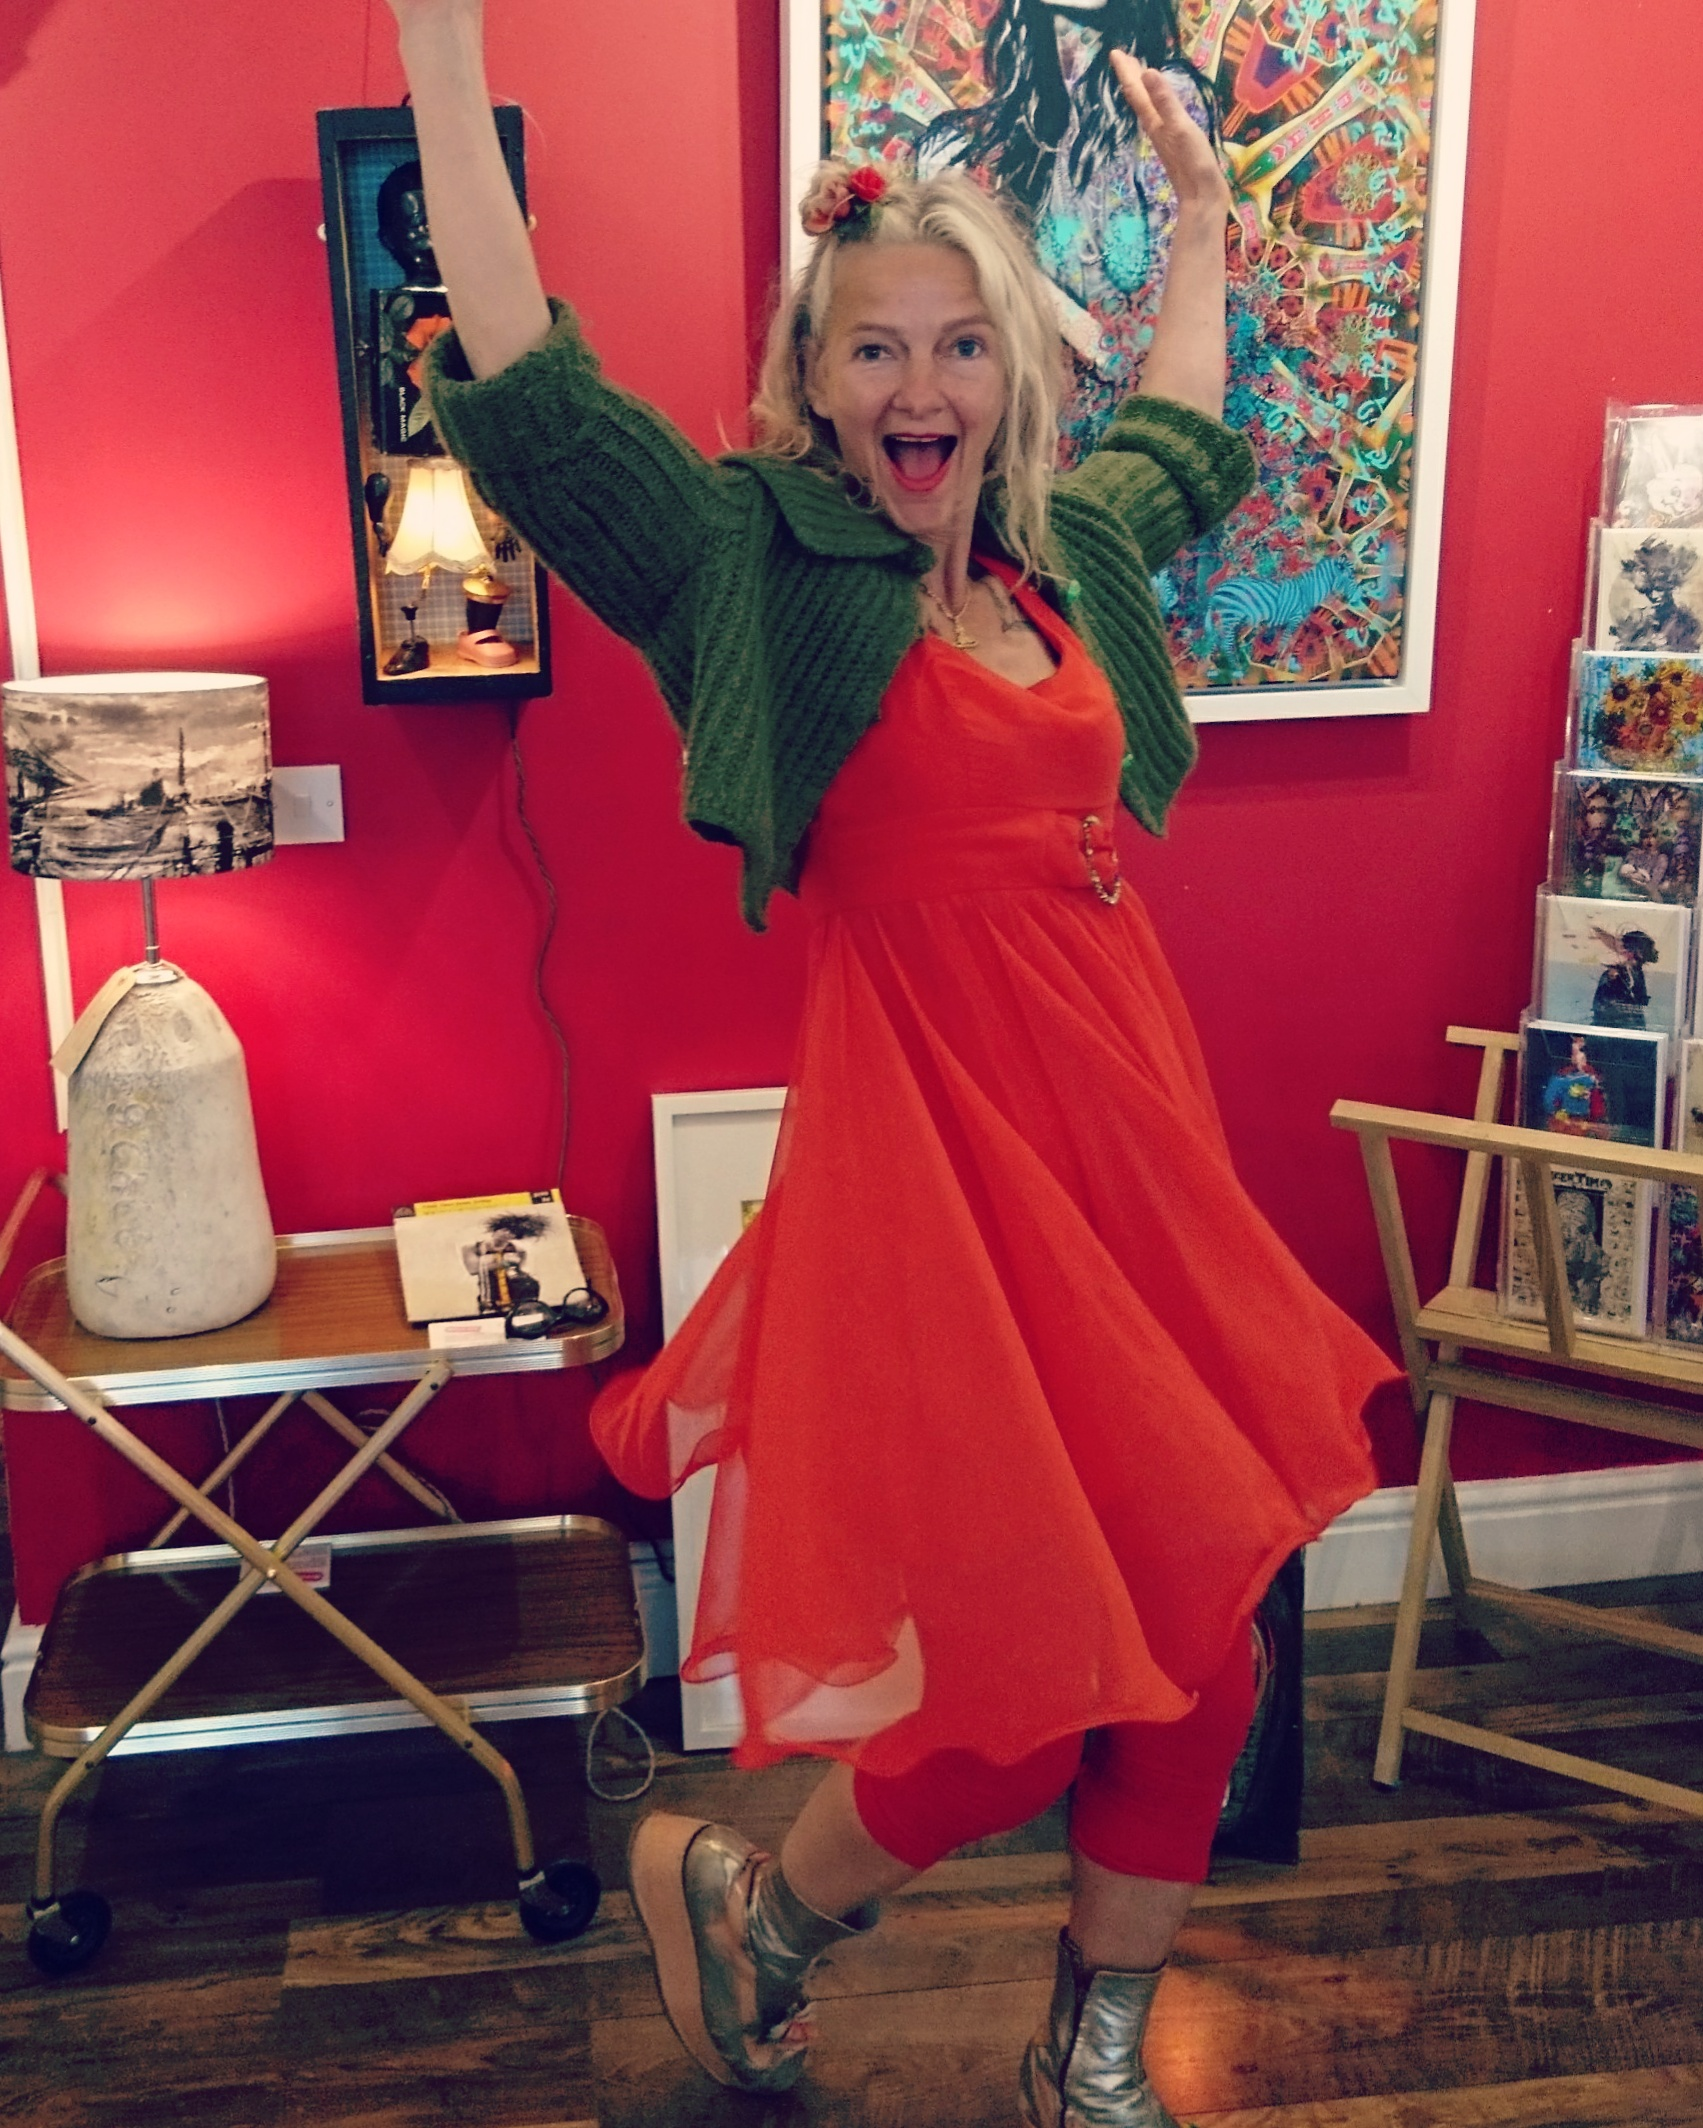 Smailes is charming and full of spirit - her energy completely in line with her art!